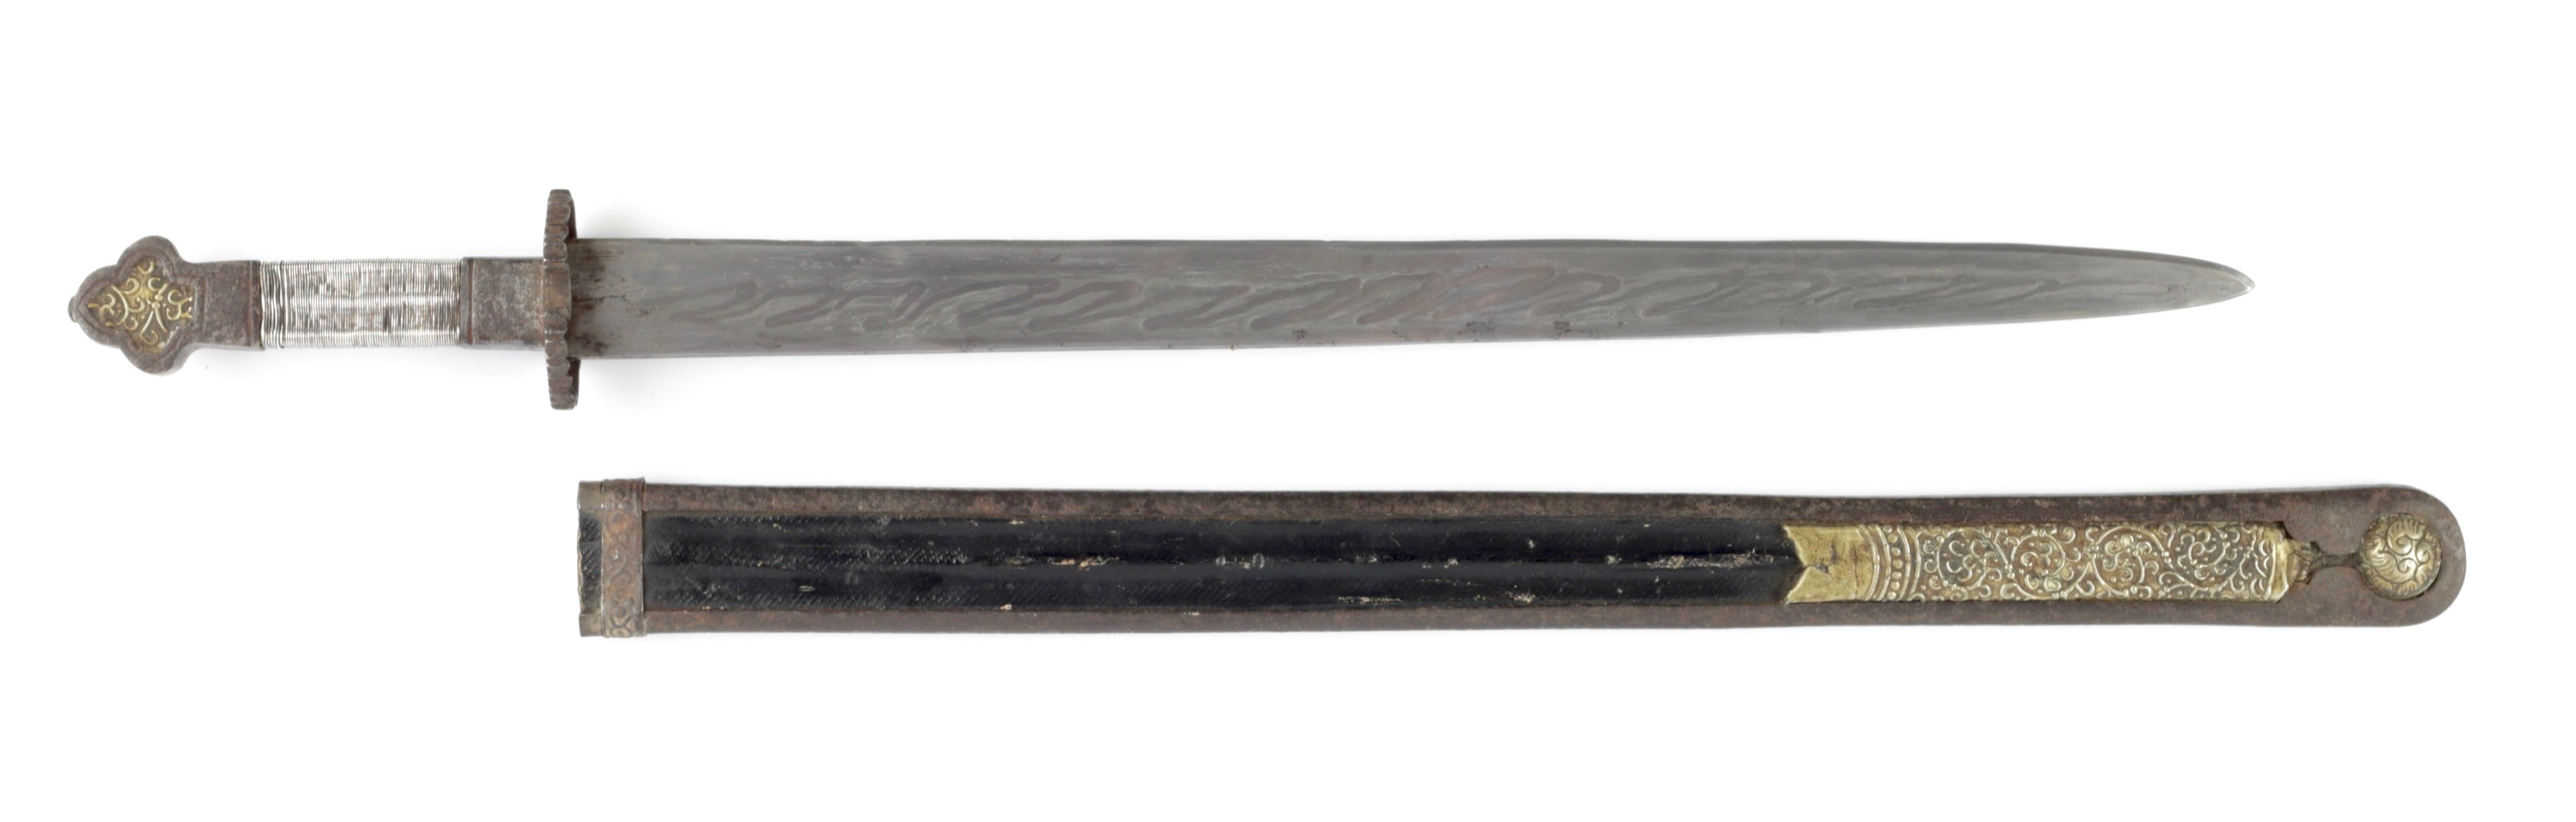 Tibetan shortsword with ce rong blade